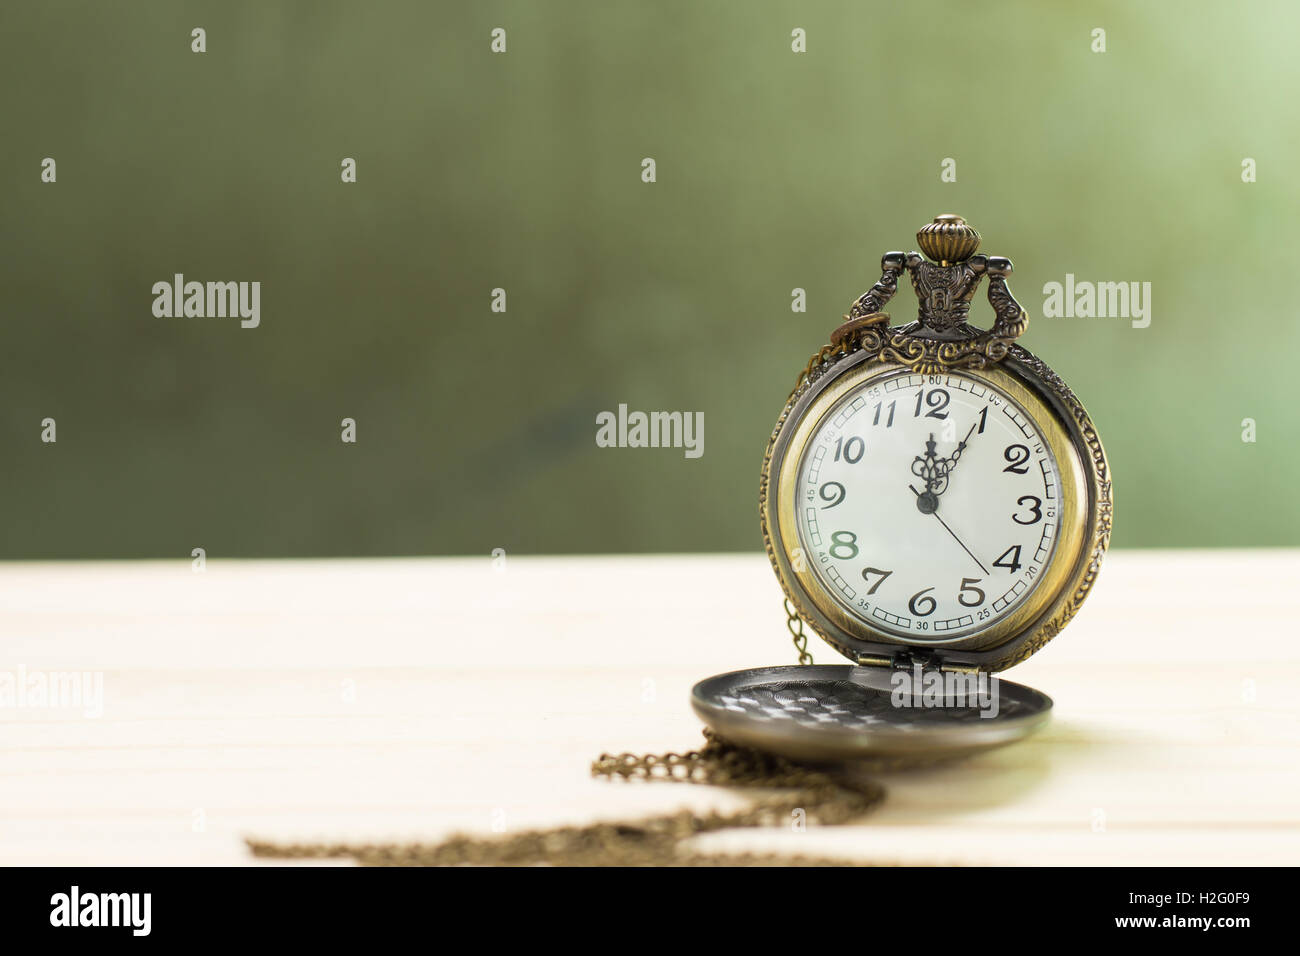 Antique clock on the wooden floor and green wall Background. - Stock Image